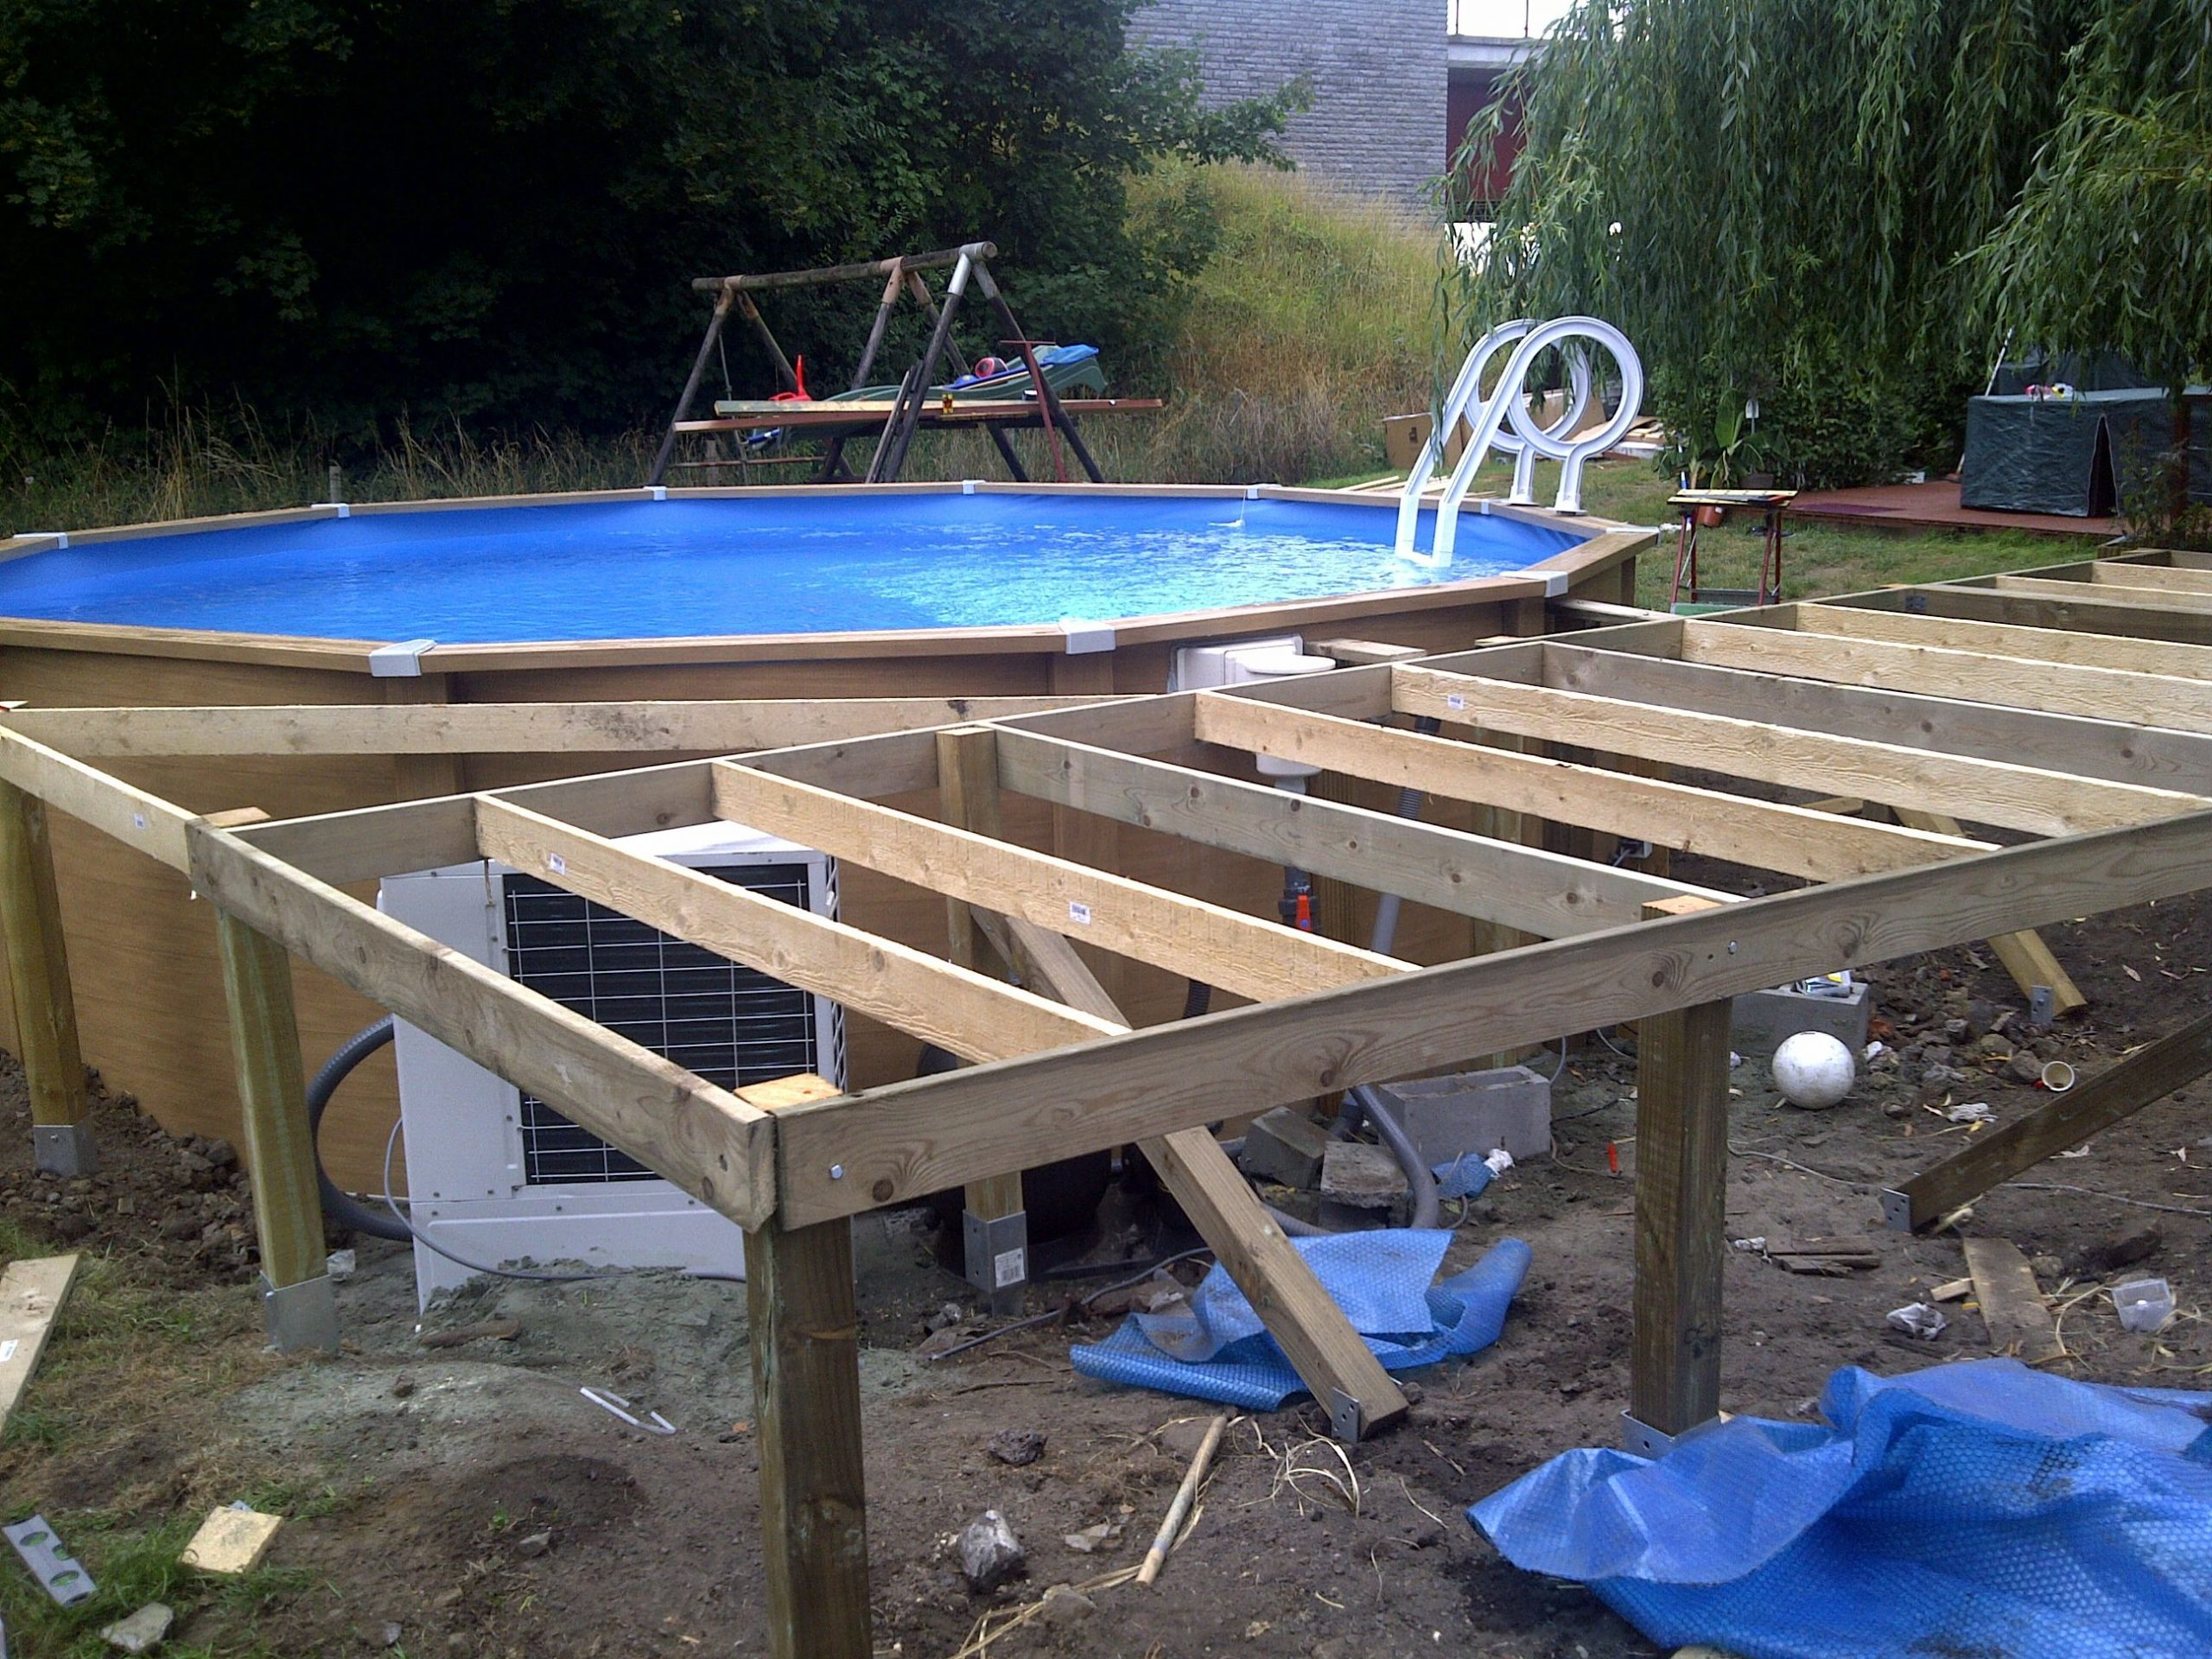 Piscine Tubulaire Intex Castorama | Diy Swimming Pool ... concernant Piscine Hors Sol Intex Tubulaire